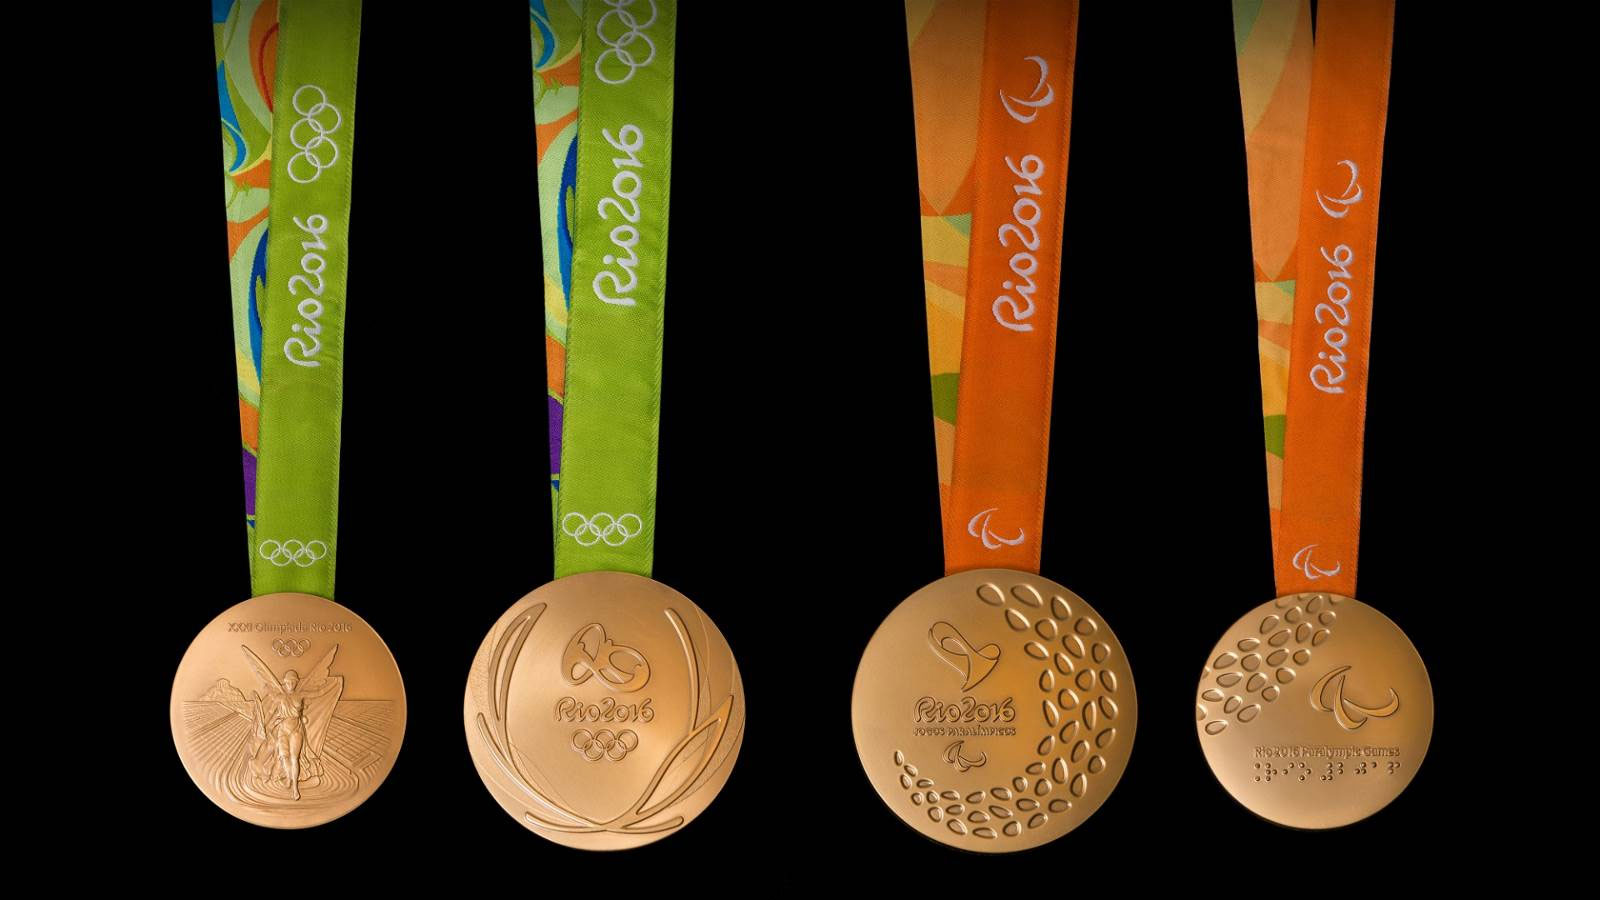 1600x900 - Olympic Gold Metal Wallpapers 11